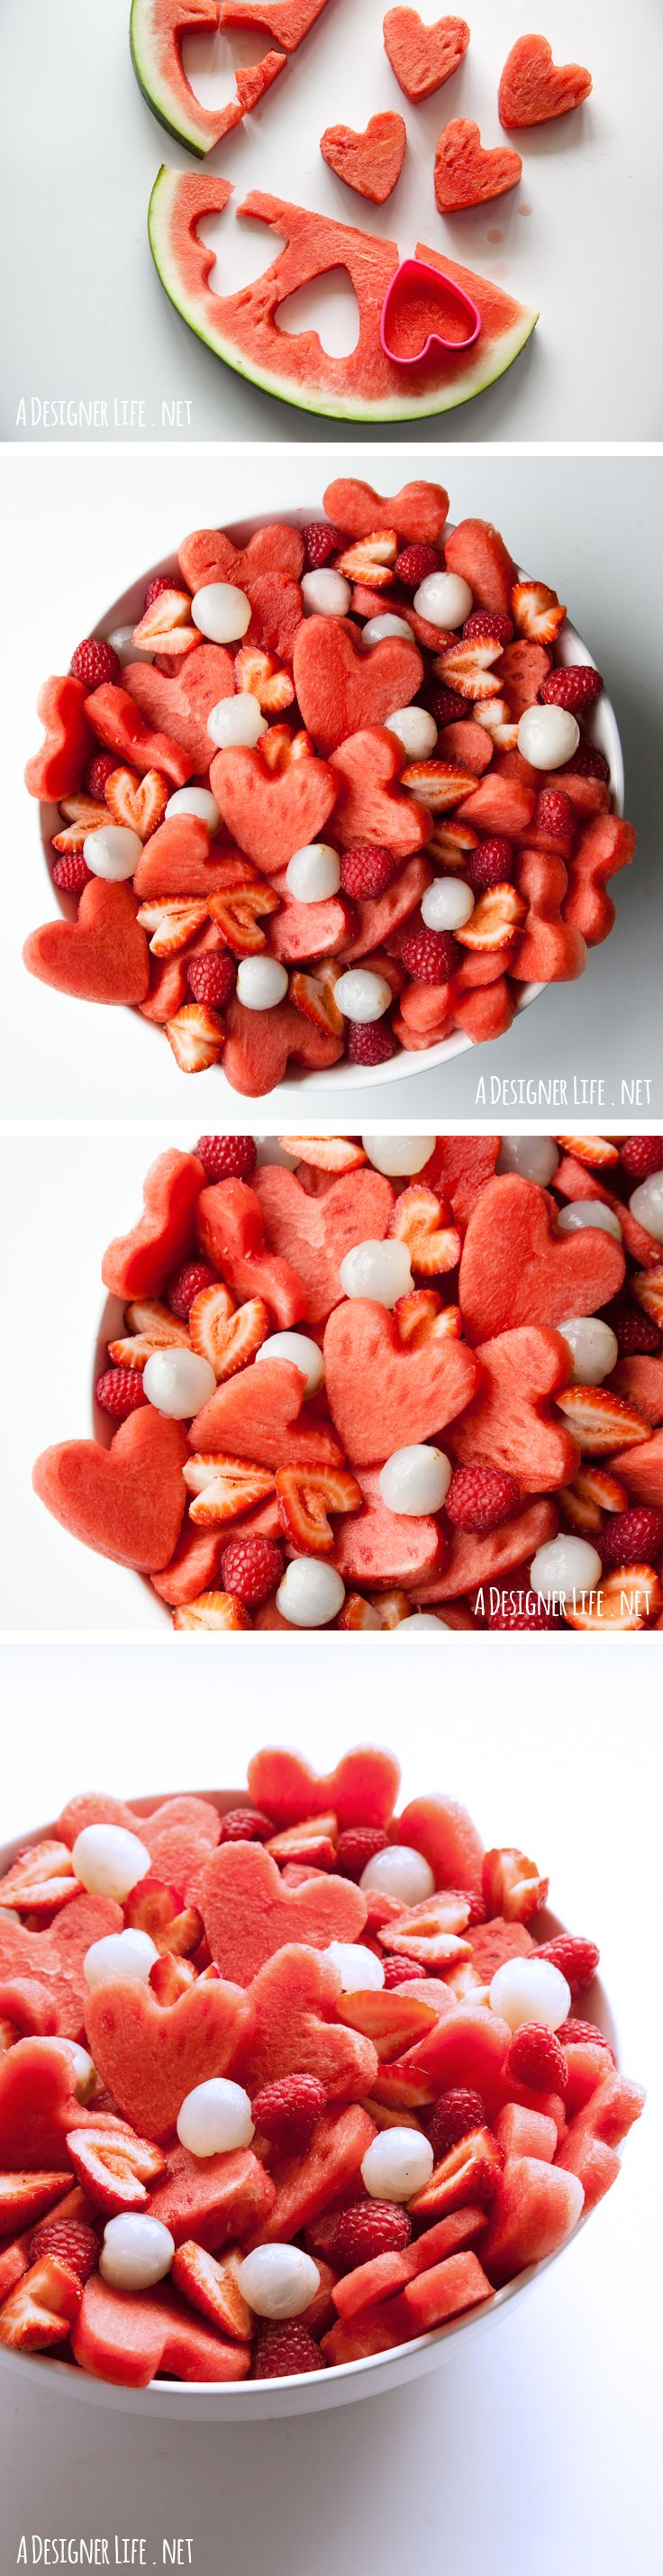 Watermelon Heart Salad..